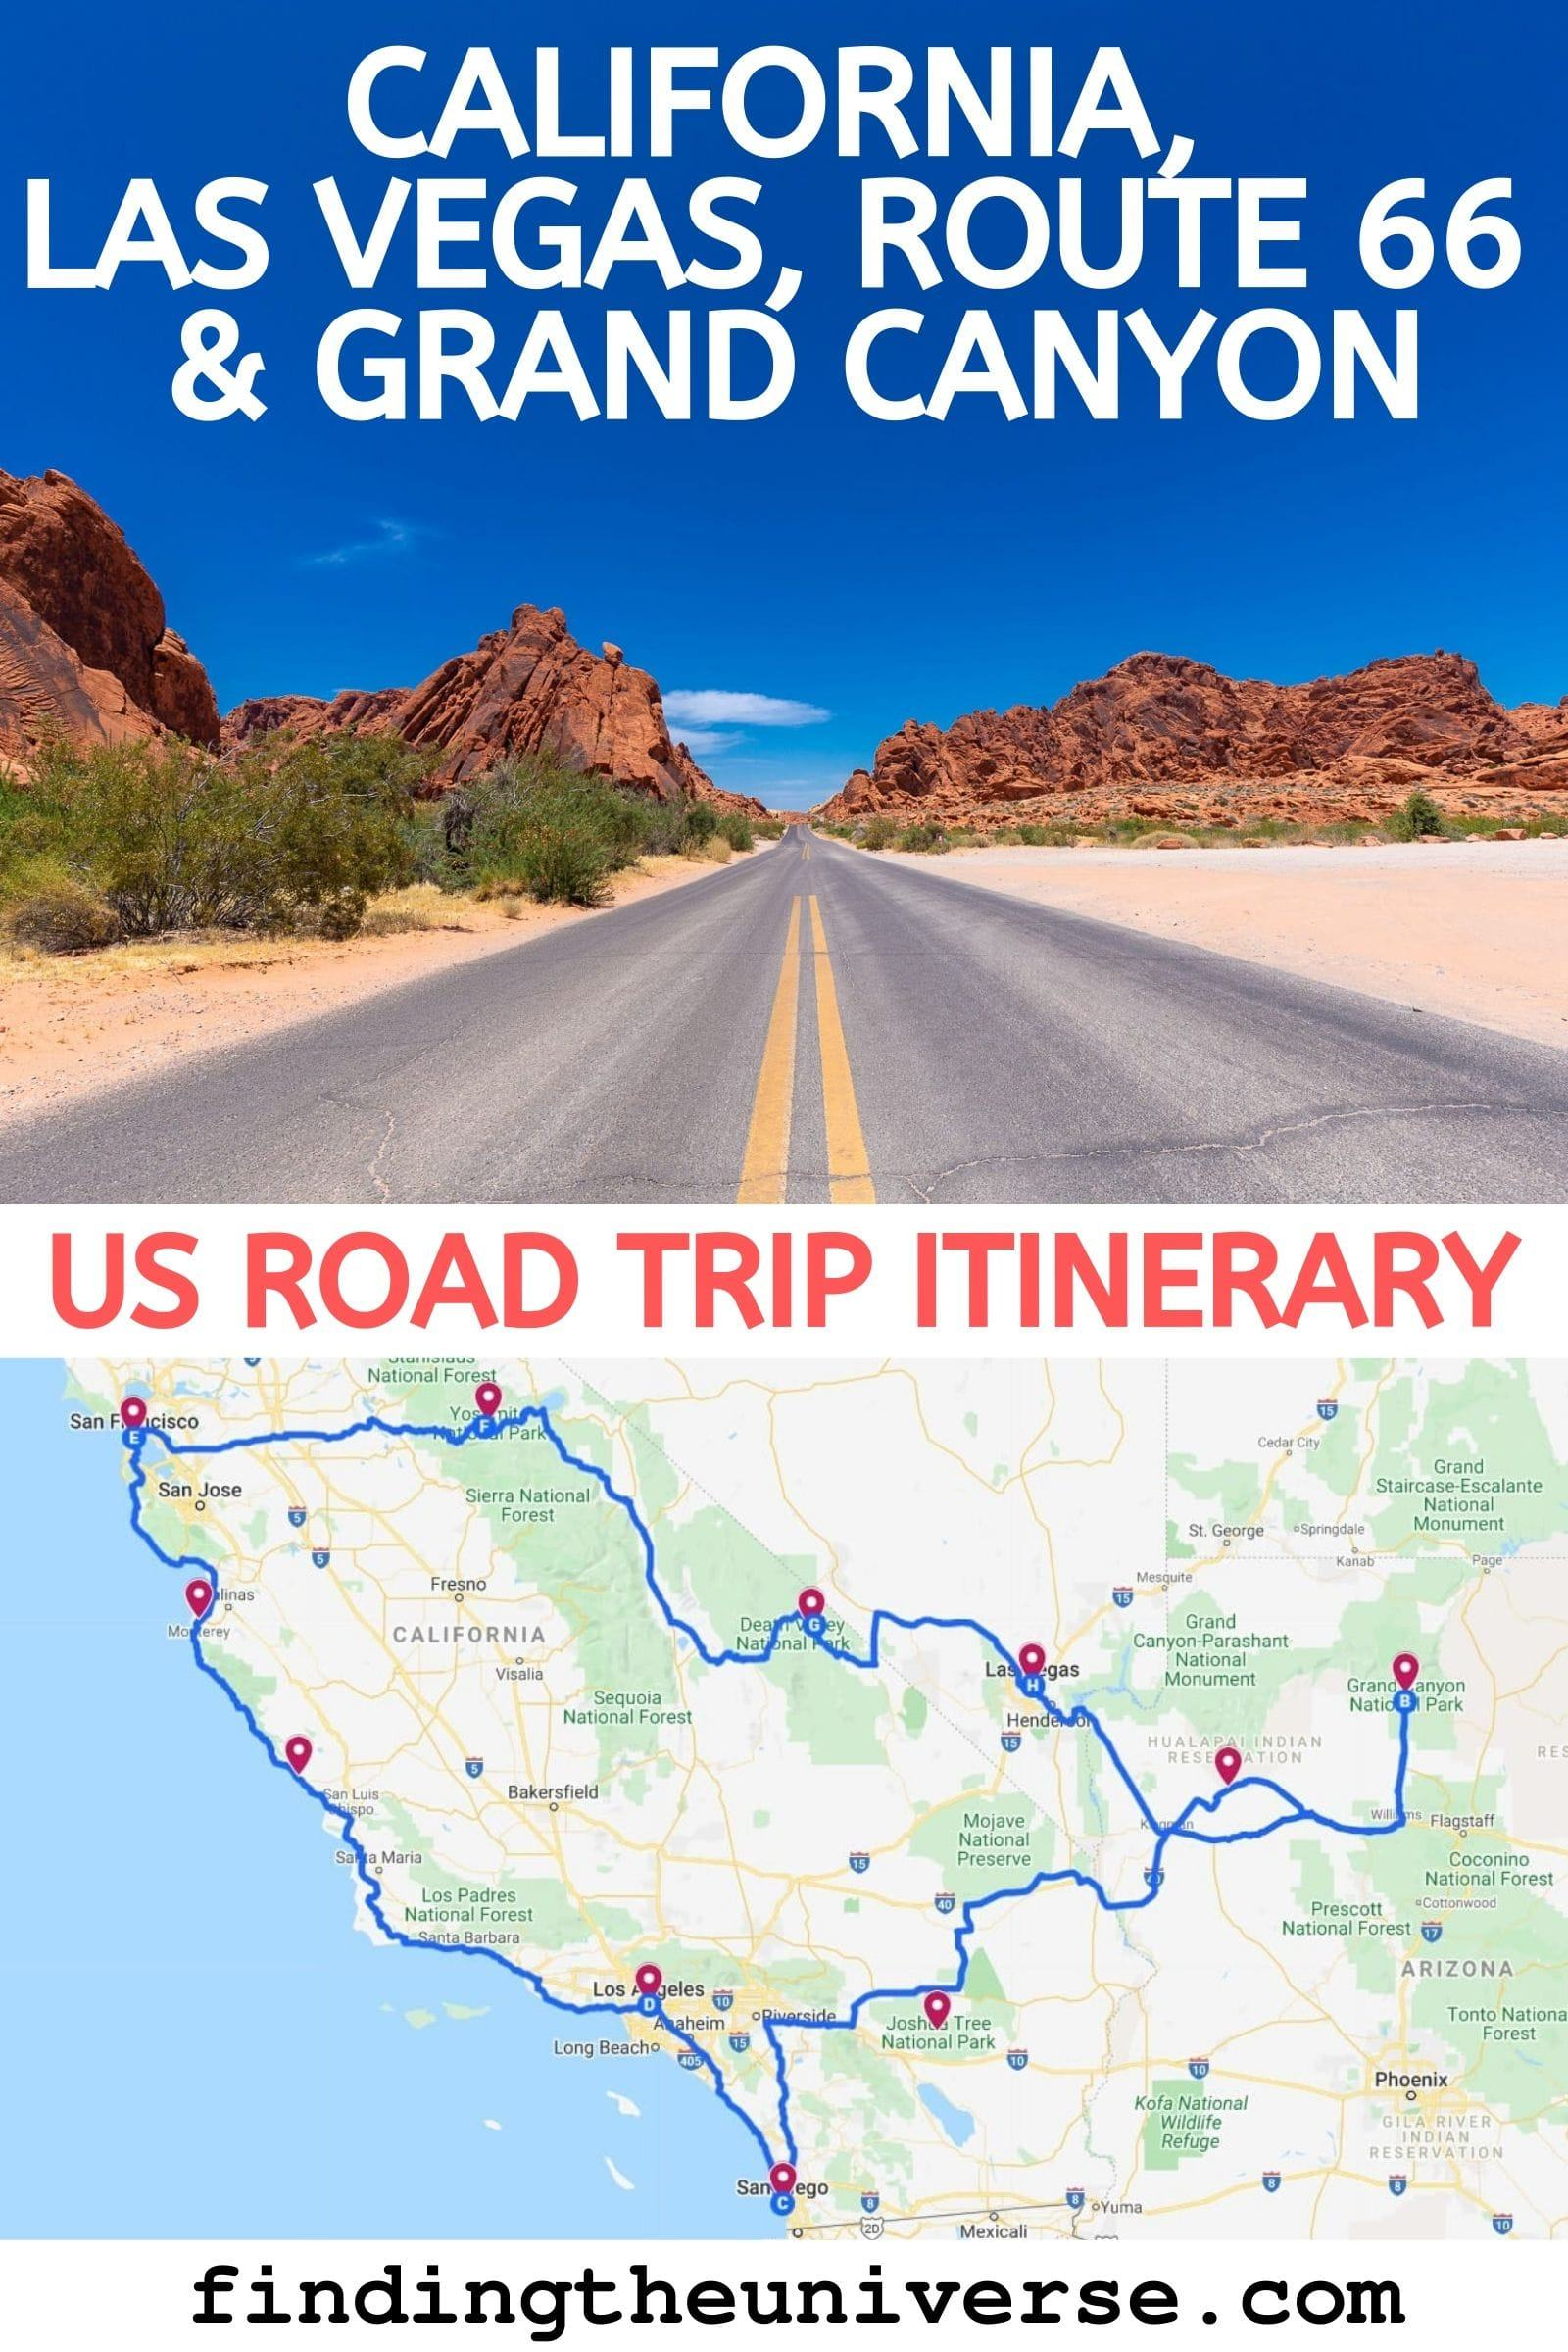 A USA road trip itinerary that covers California, Nevada and Arizona, Includes Route 66, the Grand Canyon, Las Vegas, Yosemite, Los Angeles + San Francisco!